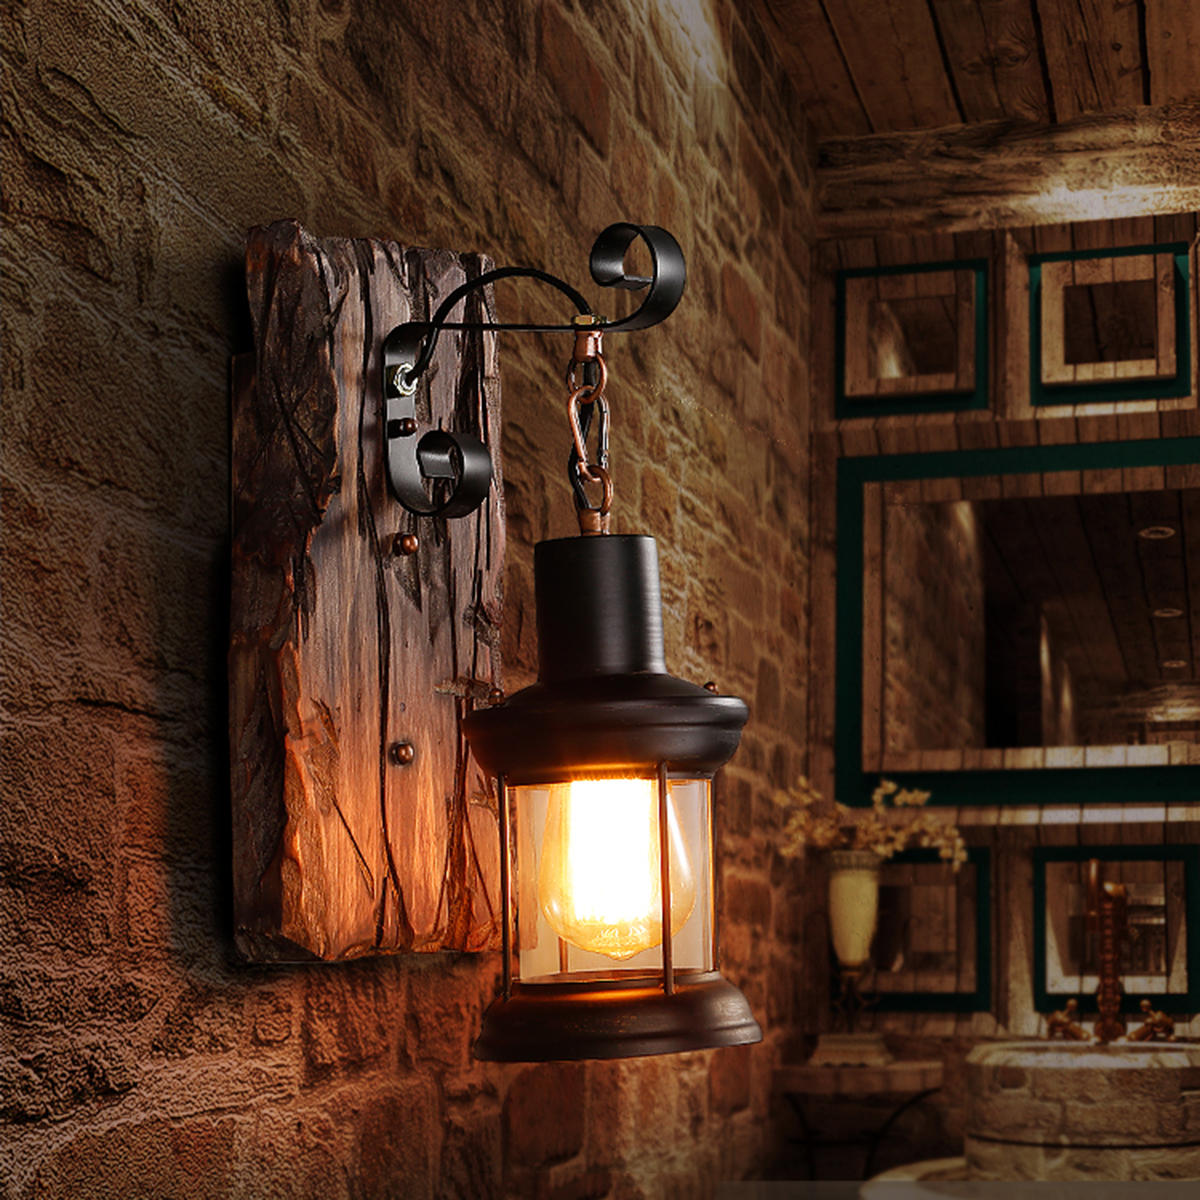 e27 vintage industrial metal sconce wall lamp fixture ... on Wall Sconce Lighting Decor id=92794